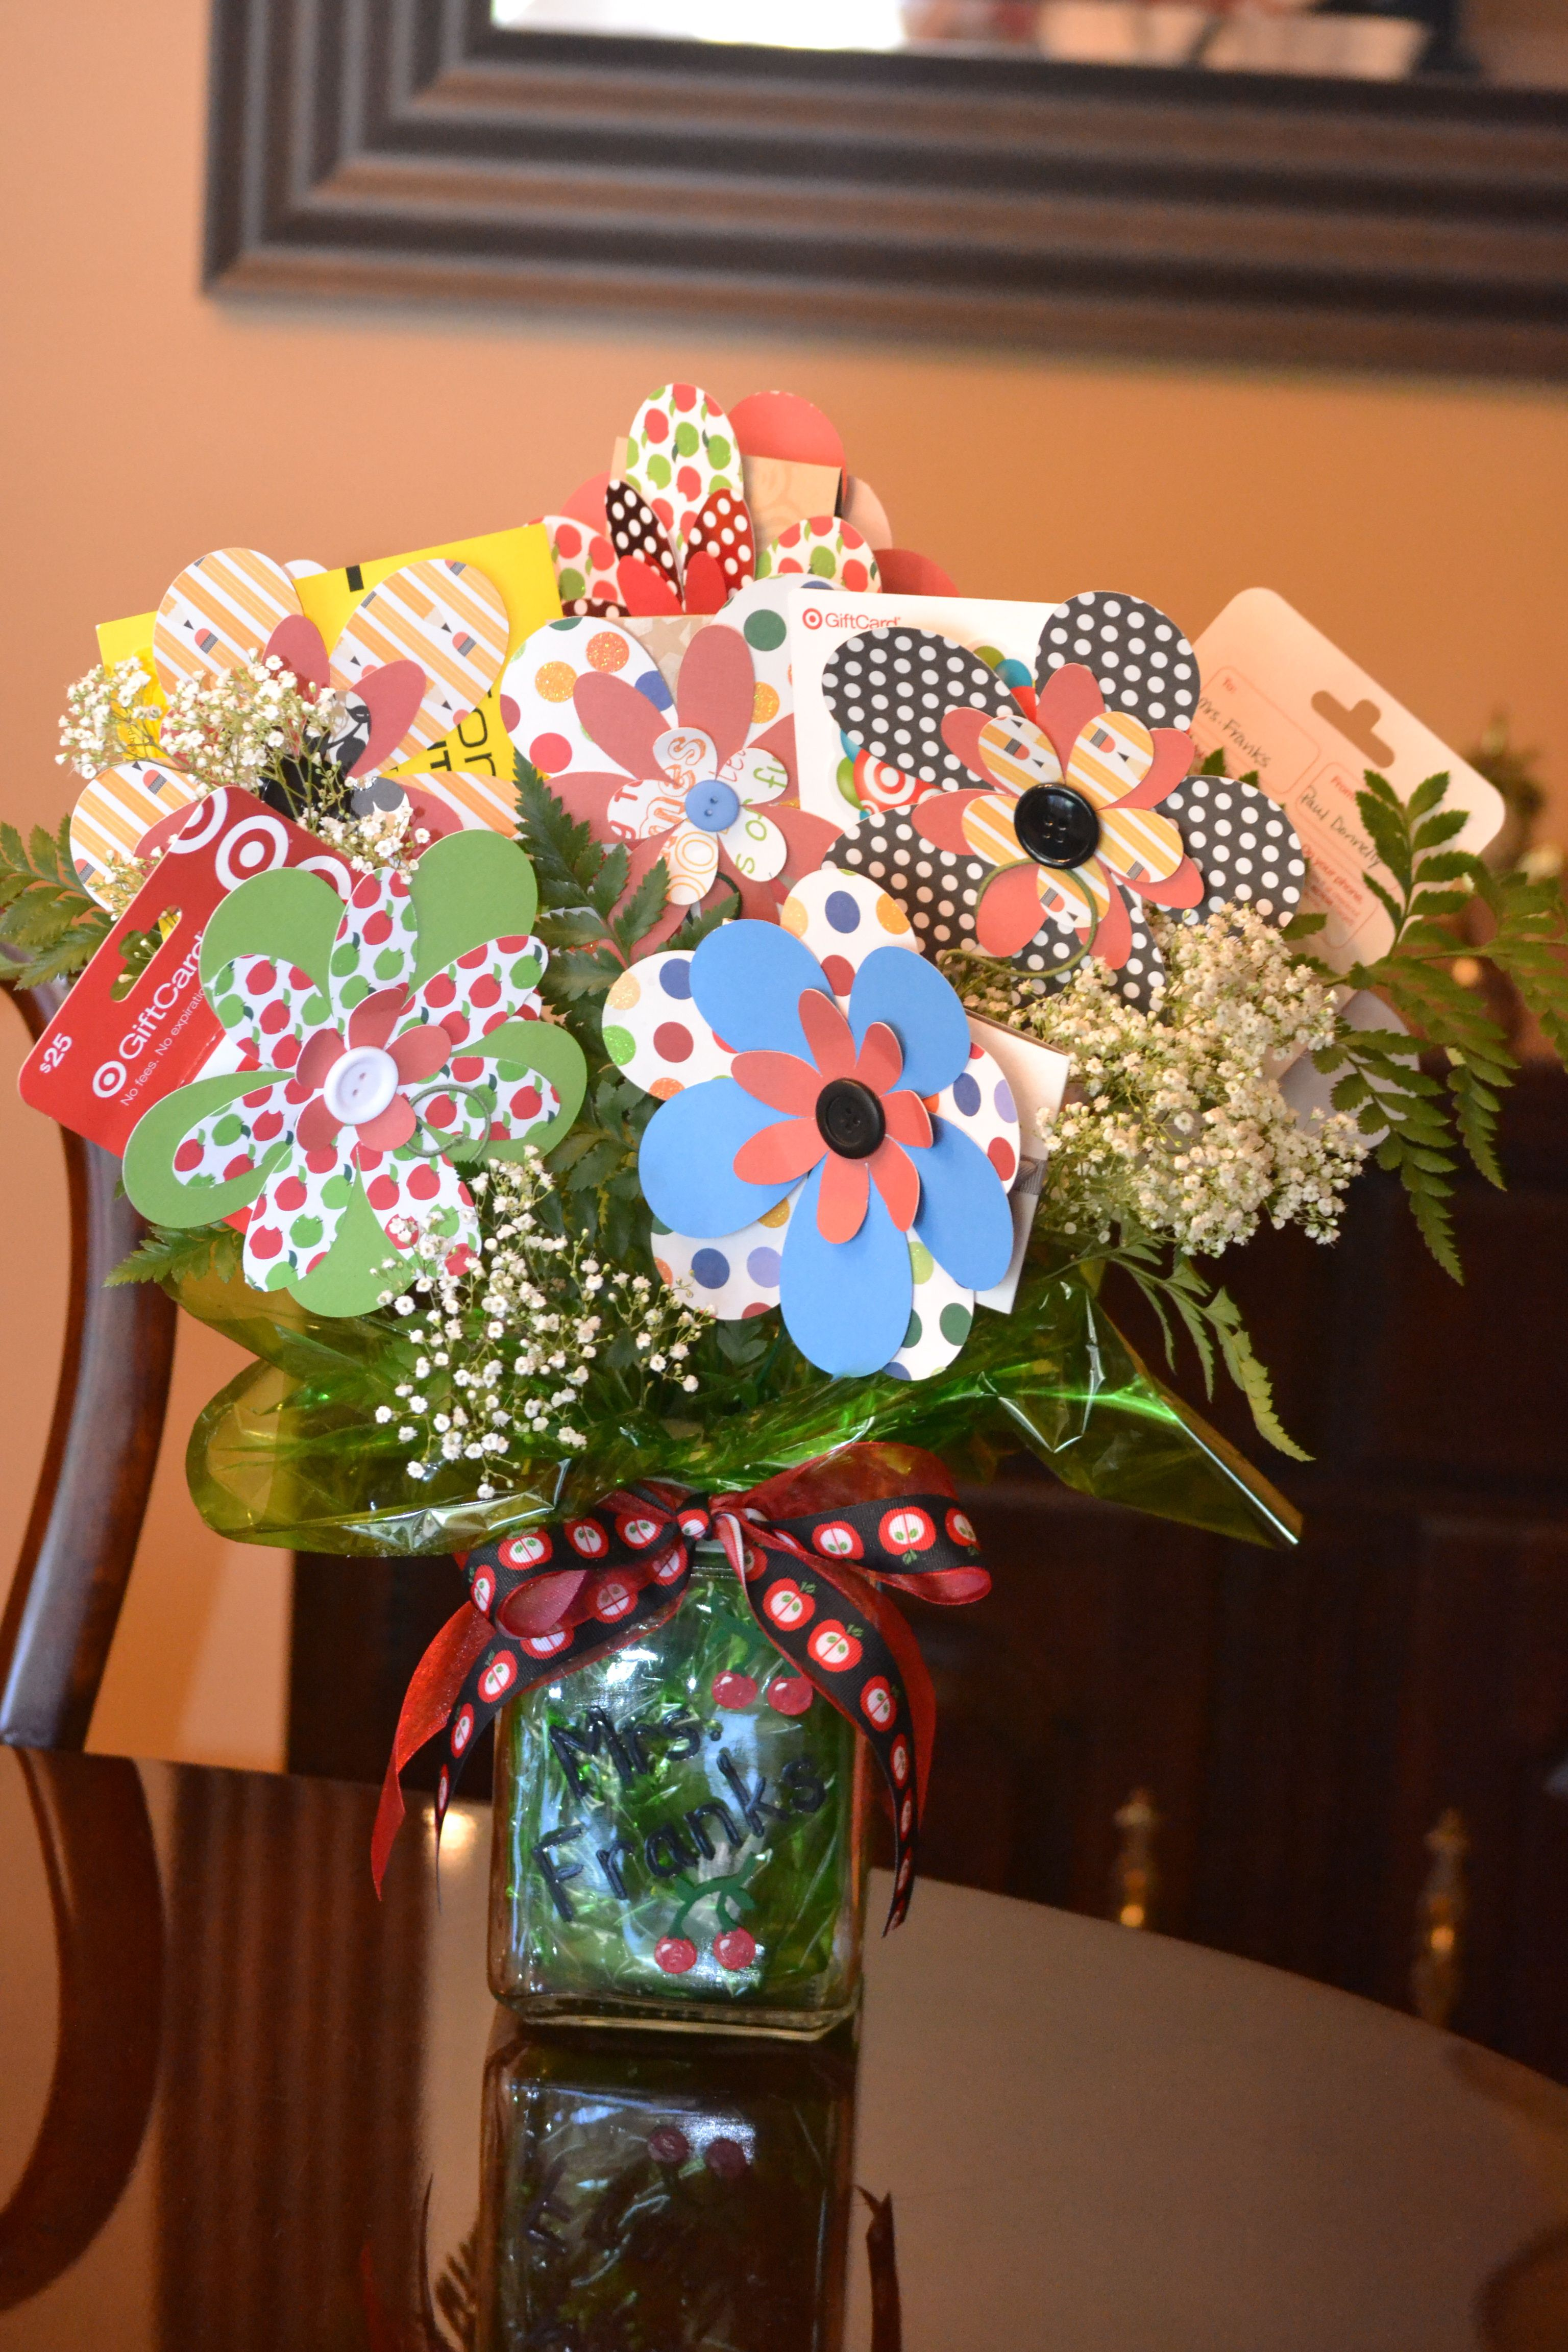 Gift card tree ideas pinterest - Paper Flower Gift Card Bouquet For Teacher Appreciation Or End Of Year Gift